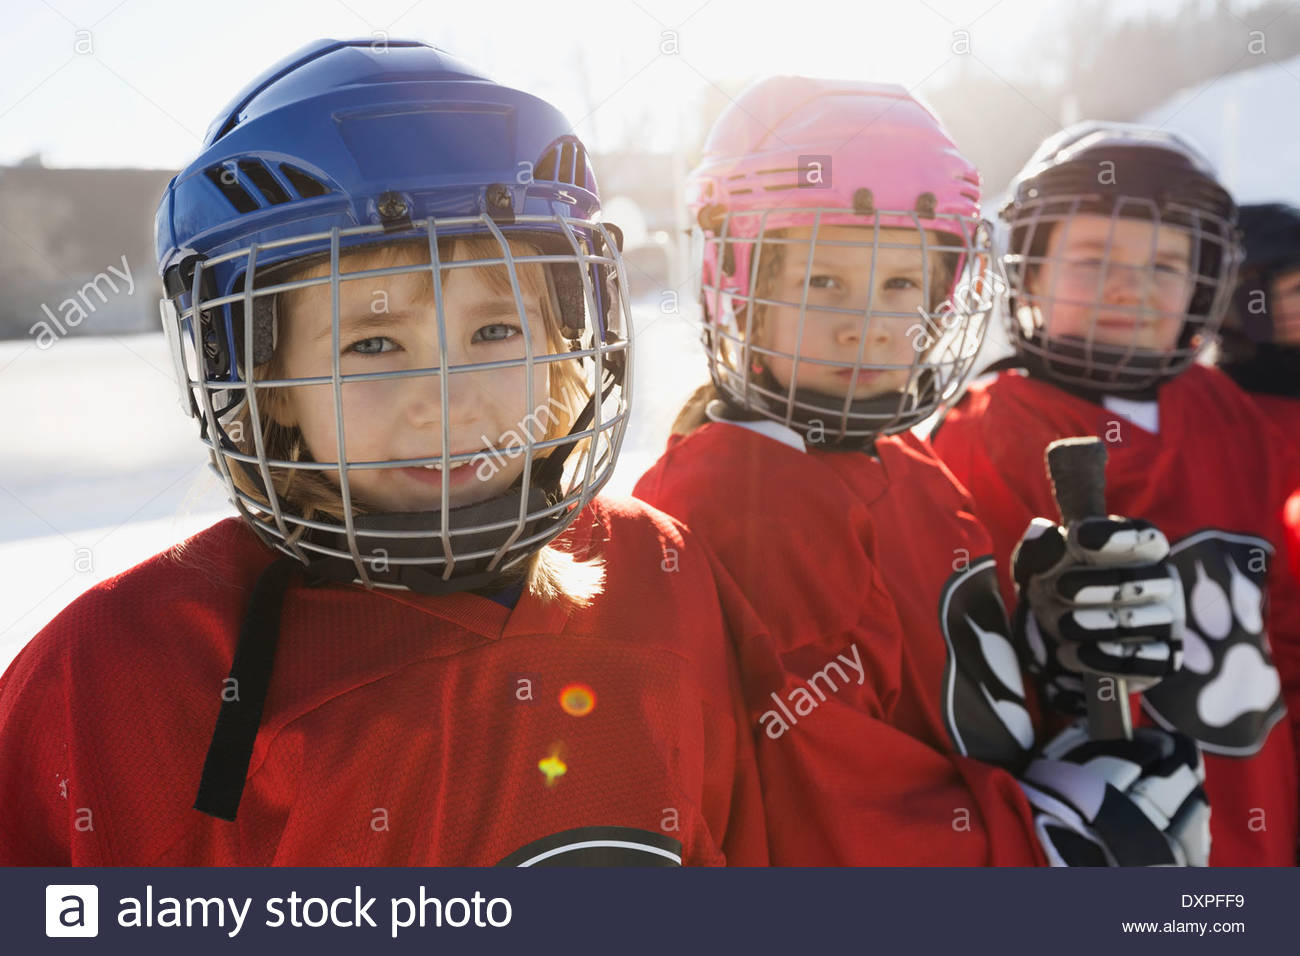 Portrait of girls in ice hockey uniform - Stock Image